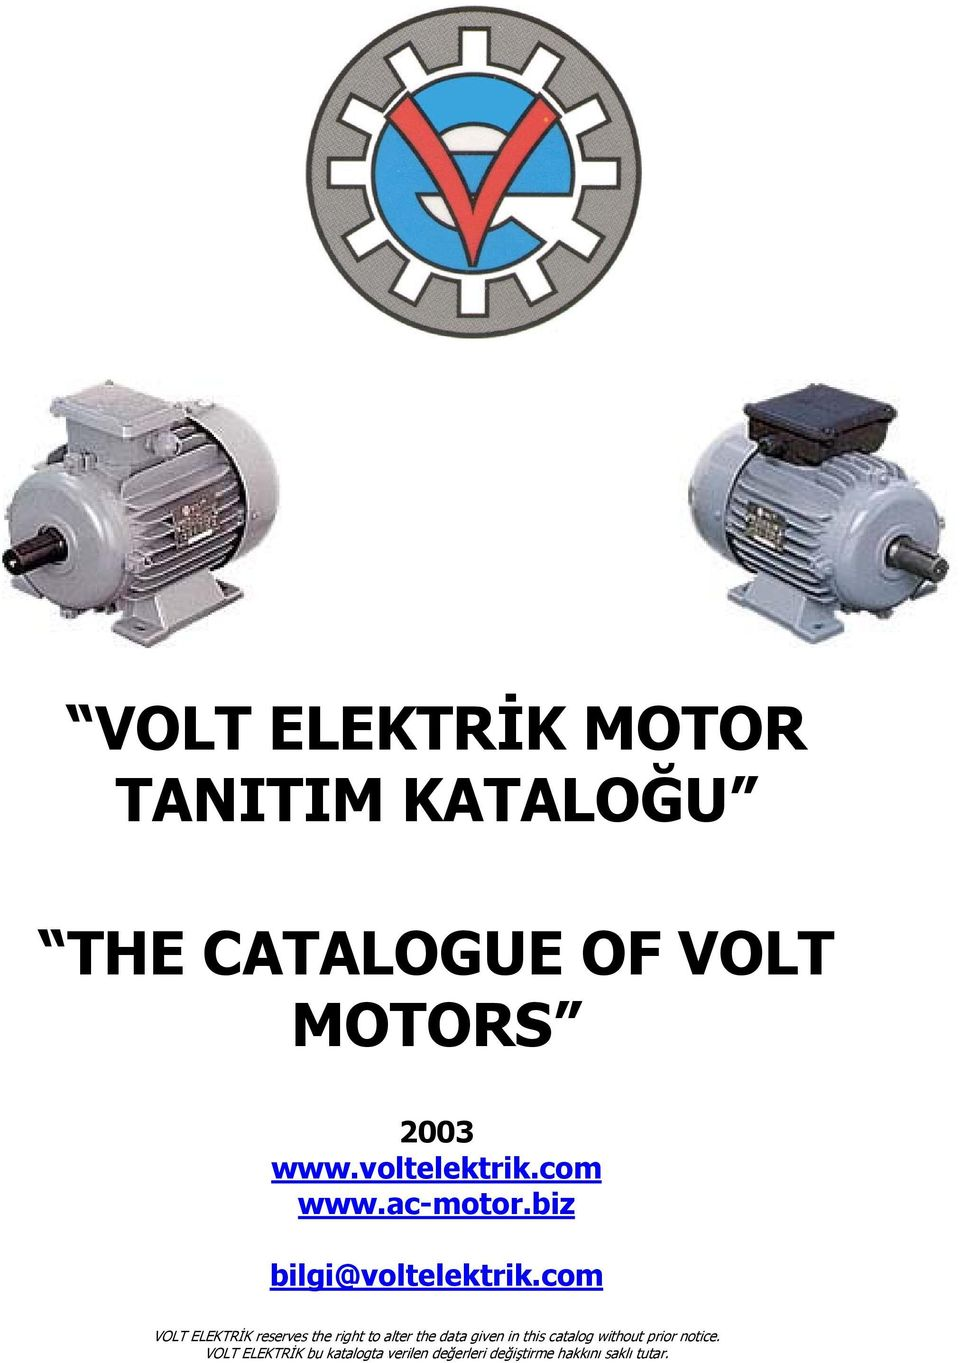 com VOLT ELEKTRİK reserves the right to alter the data given in this